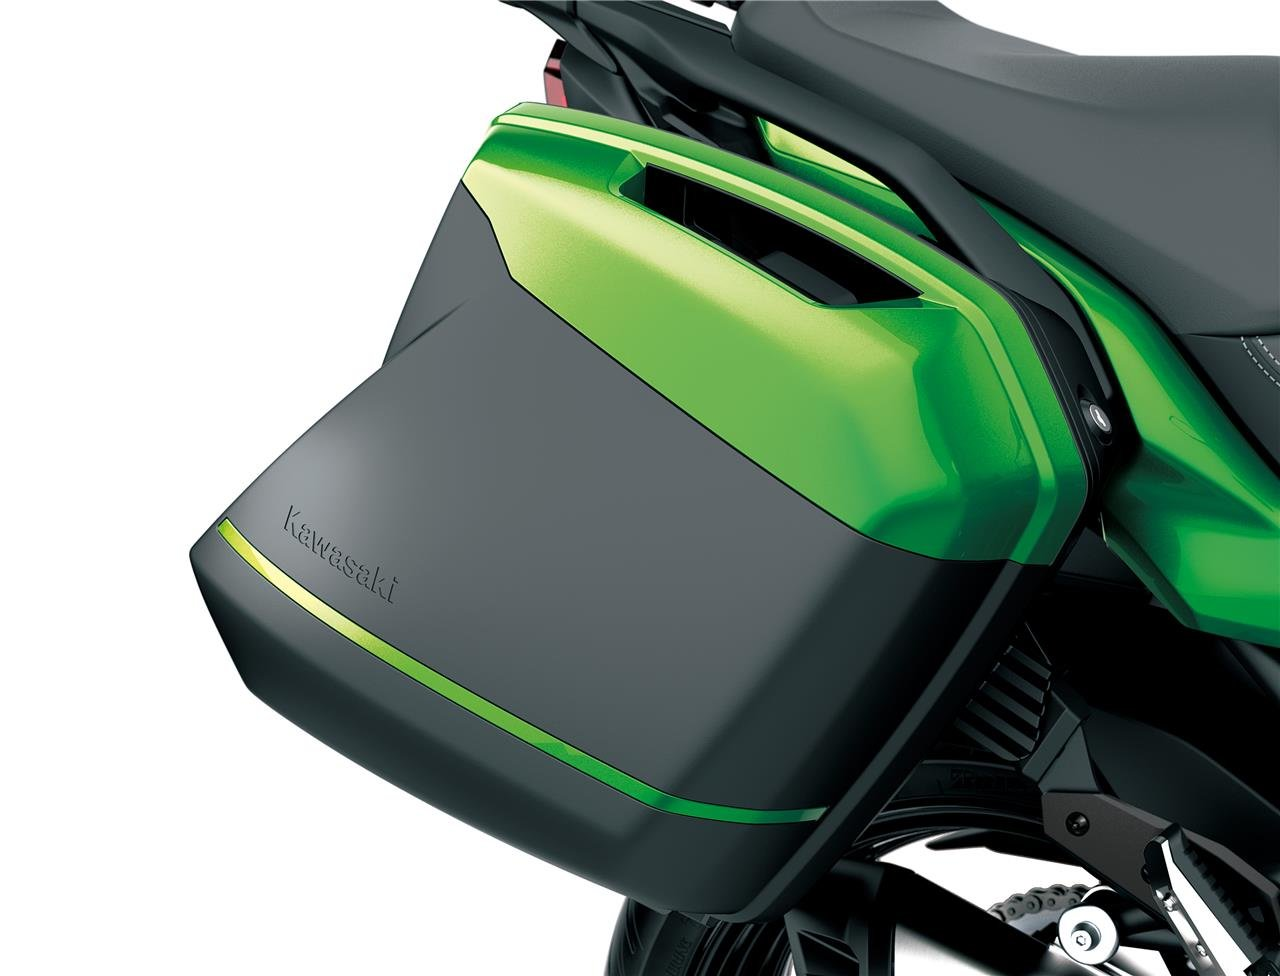 New 2020 Kawasaki Versys1000 ABS Tourer*£700 Paid & Delivery For Sale (picture 3 of 6)